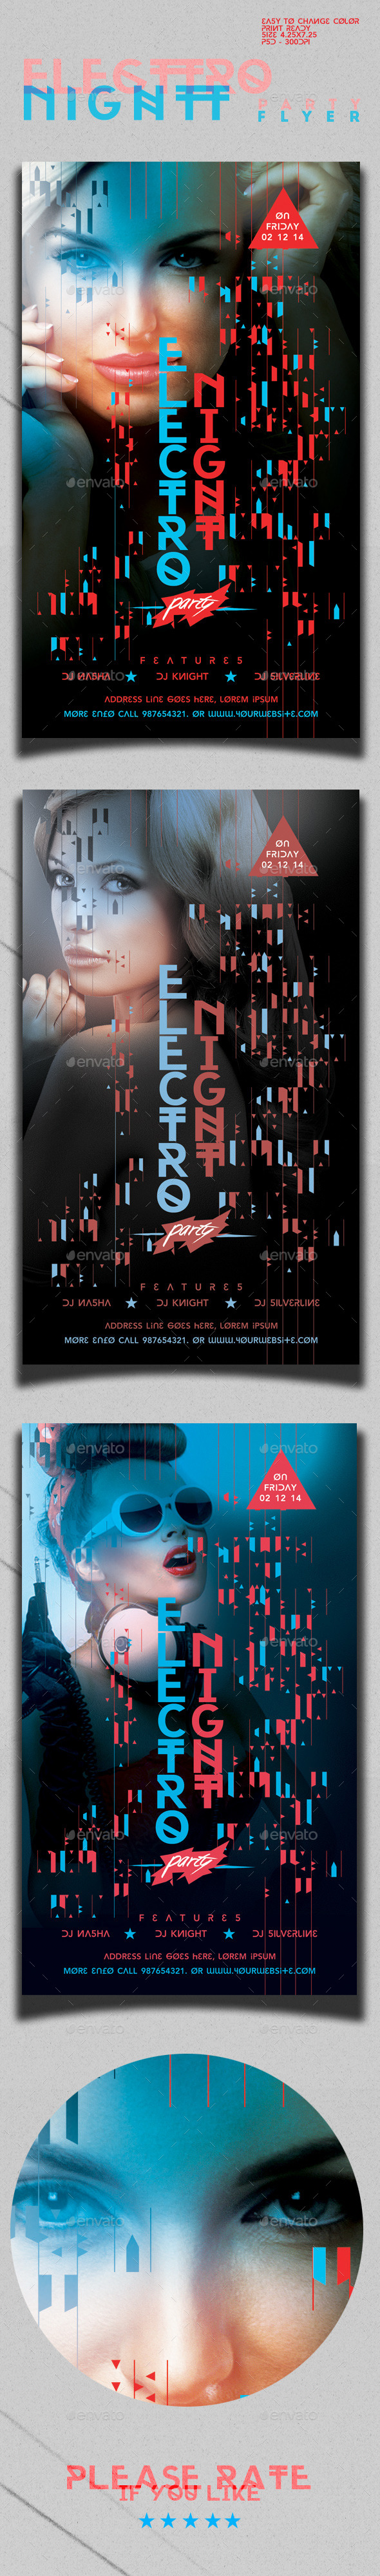 Electro Night Party Flyer Template - Clubs & Parties Events